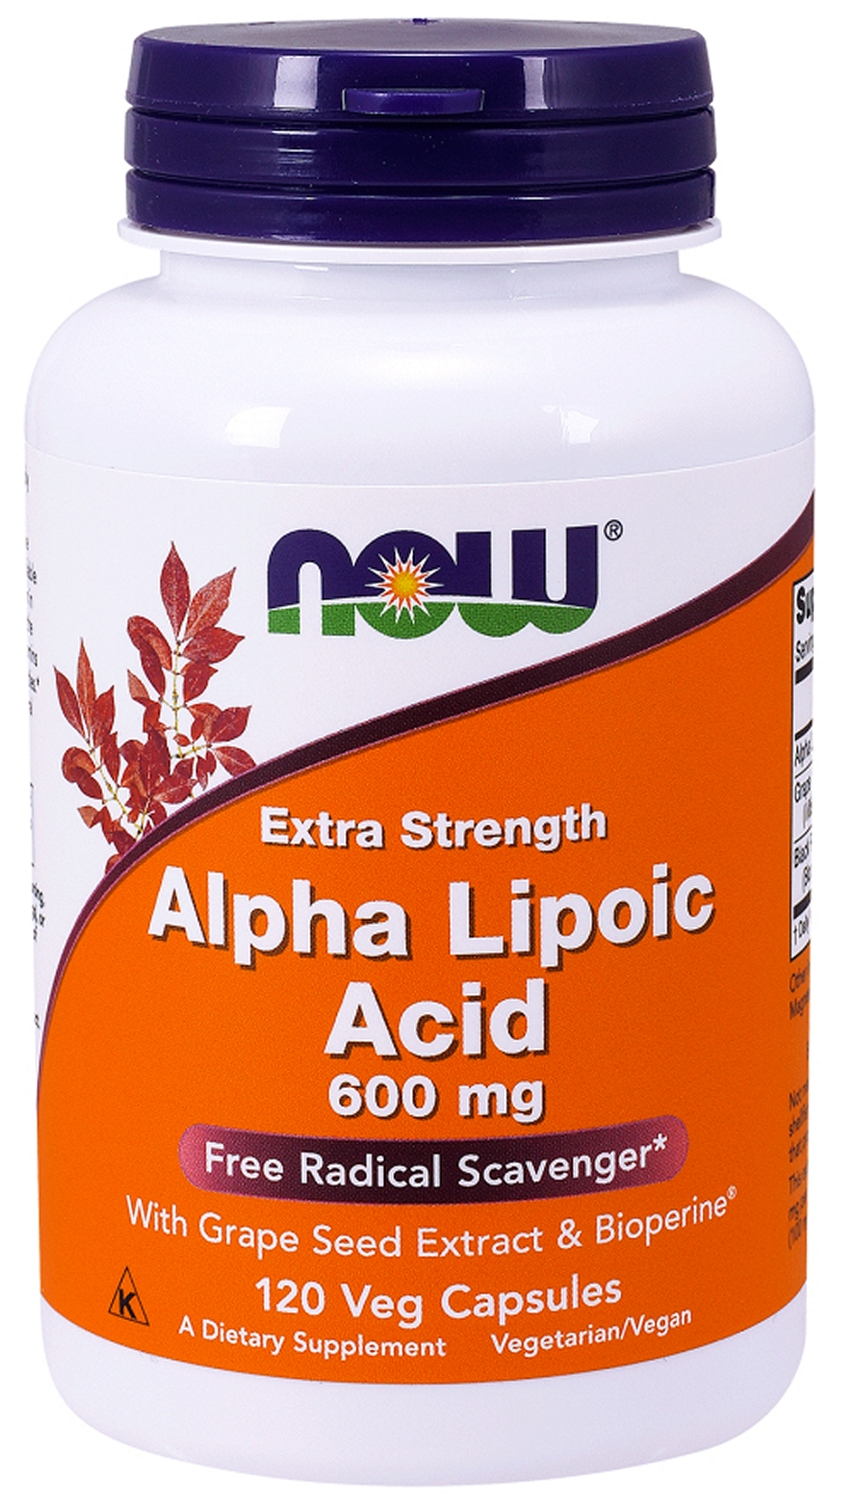 Alpha Lipoic Acid 600 mg 120 Vcaps by NOW